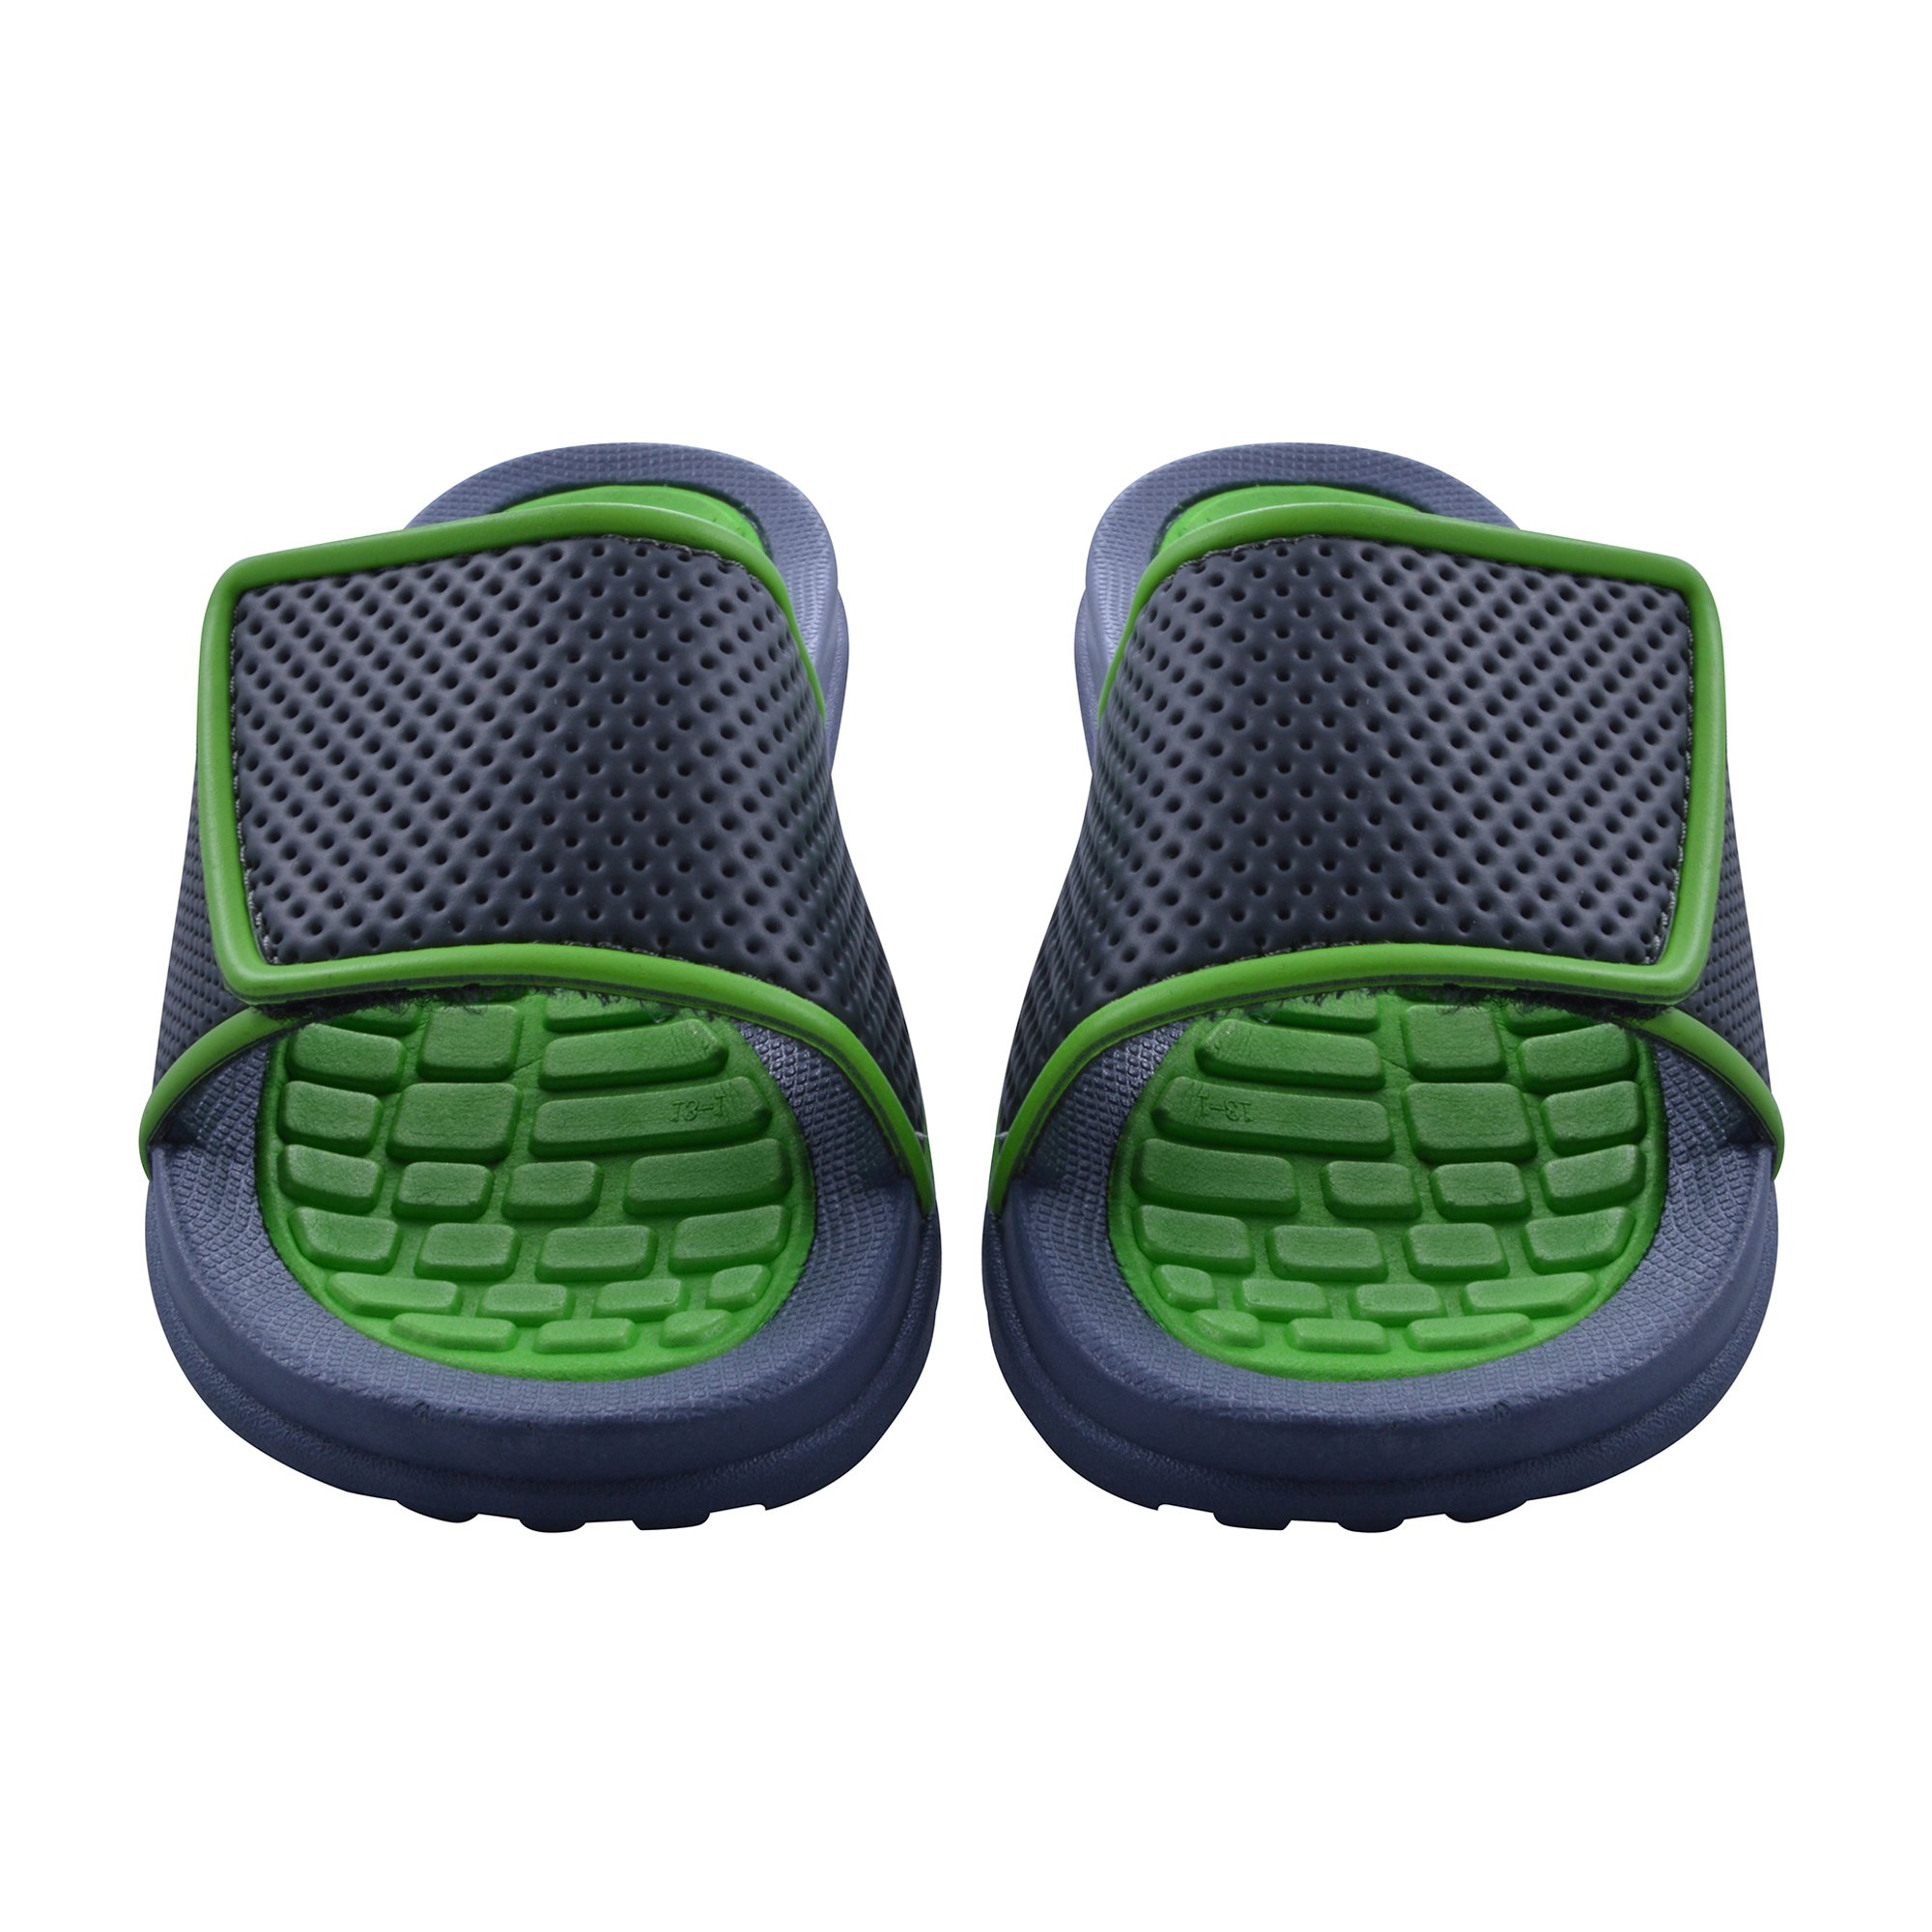 Skysole Boys Rugged Slide Sandal with Velcro Closure in Lime, Size 13/1 US Little Kid